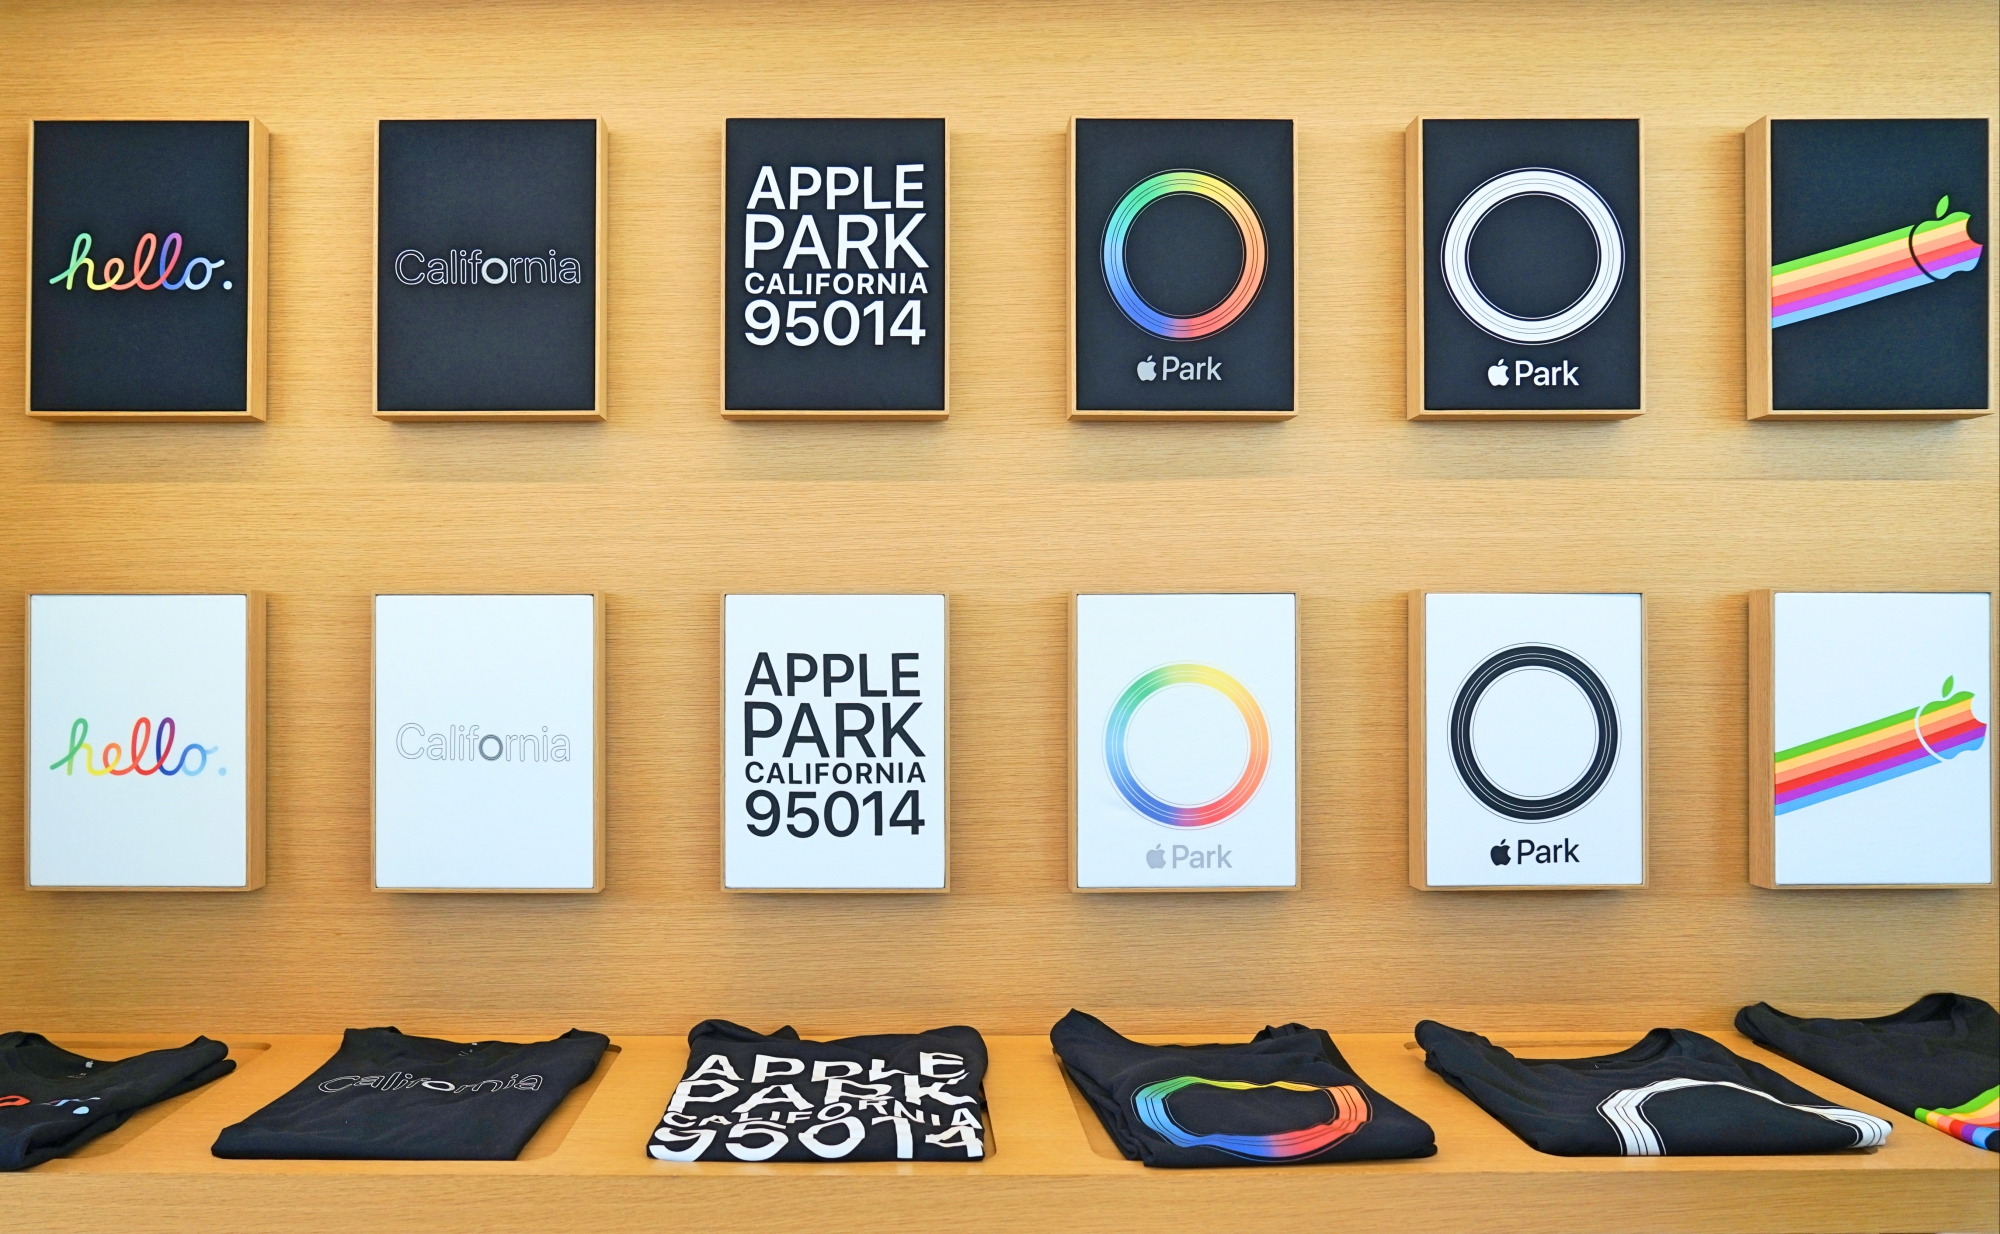 Camisetas Exclusivas do Visitor Center da Apple em Cupertino - Hotel California Blog